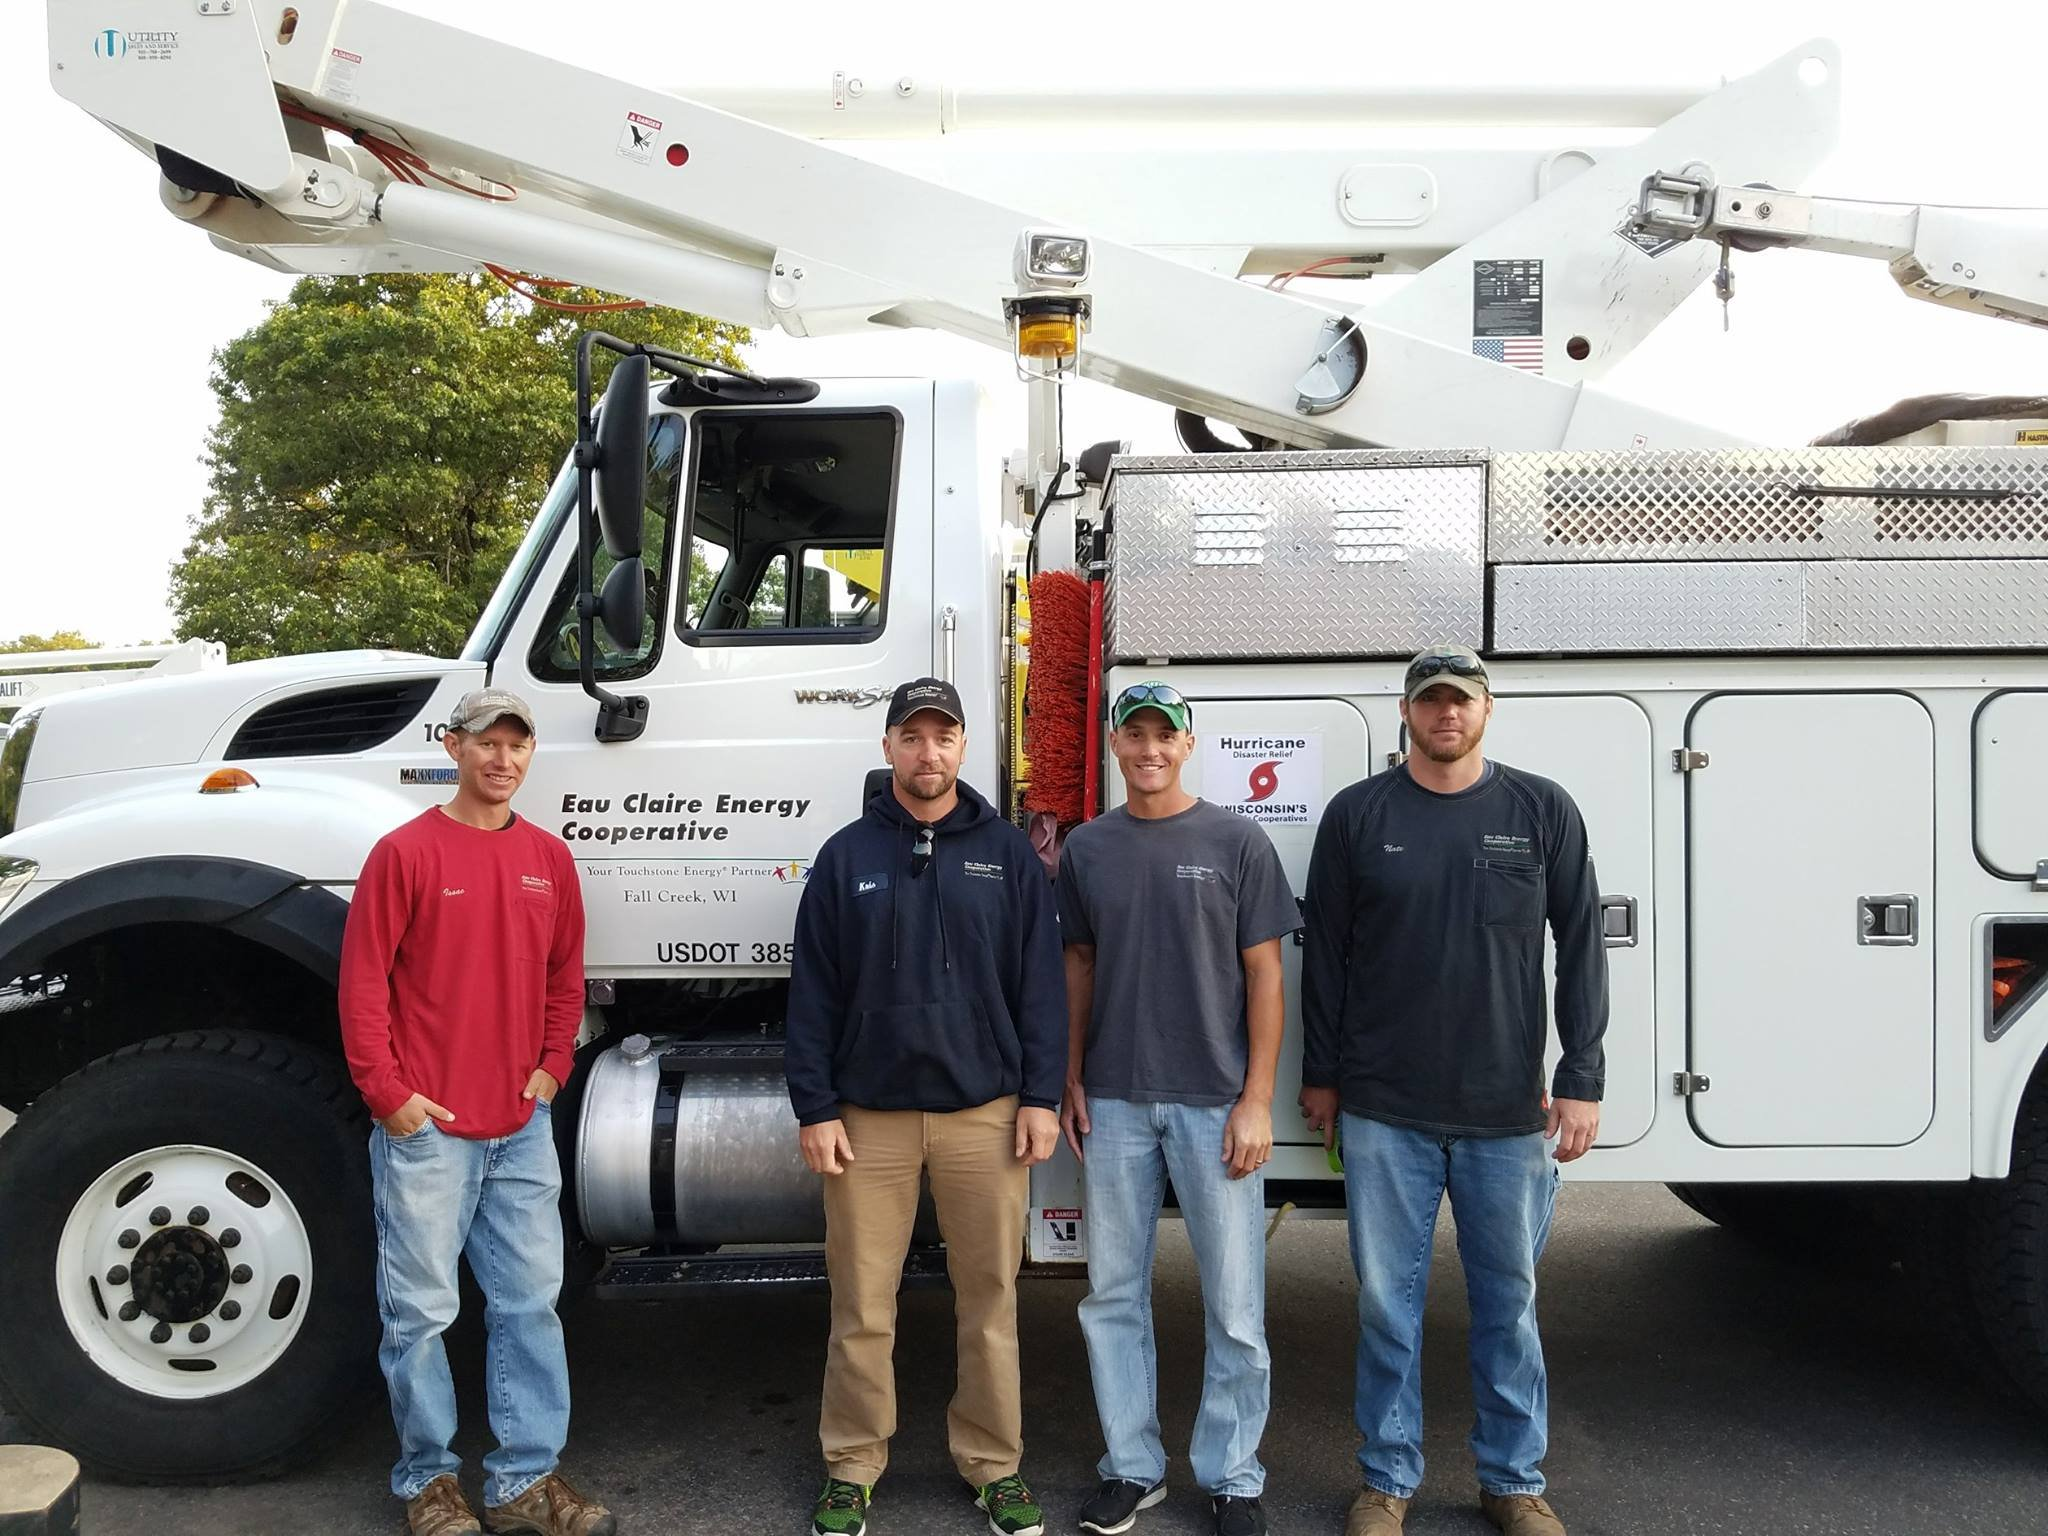 Eau Claire Energy Co-op's crew, (left to right) Issac, Kris, Josh and Nate. Courtesy: Eau Claire Energy Cooperative